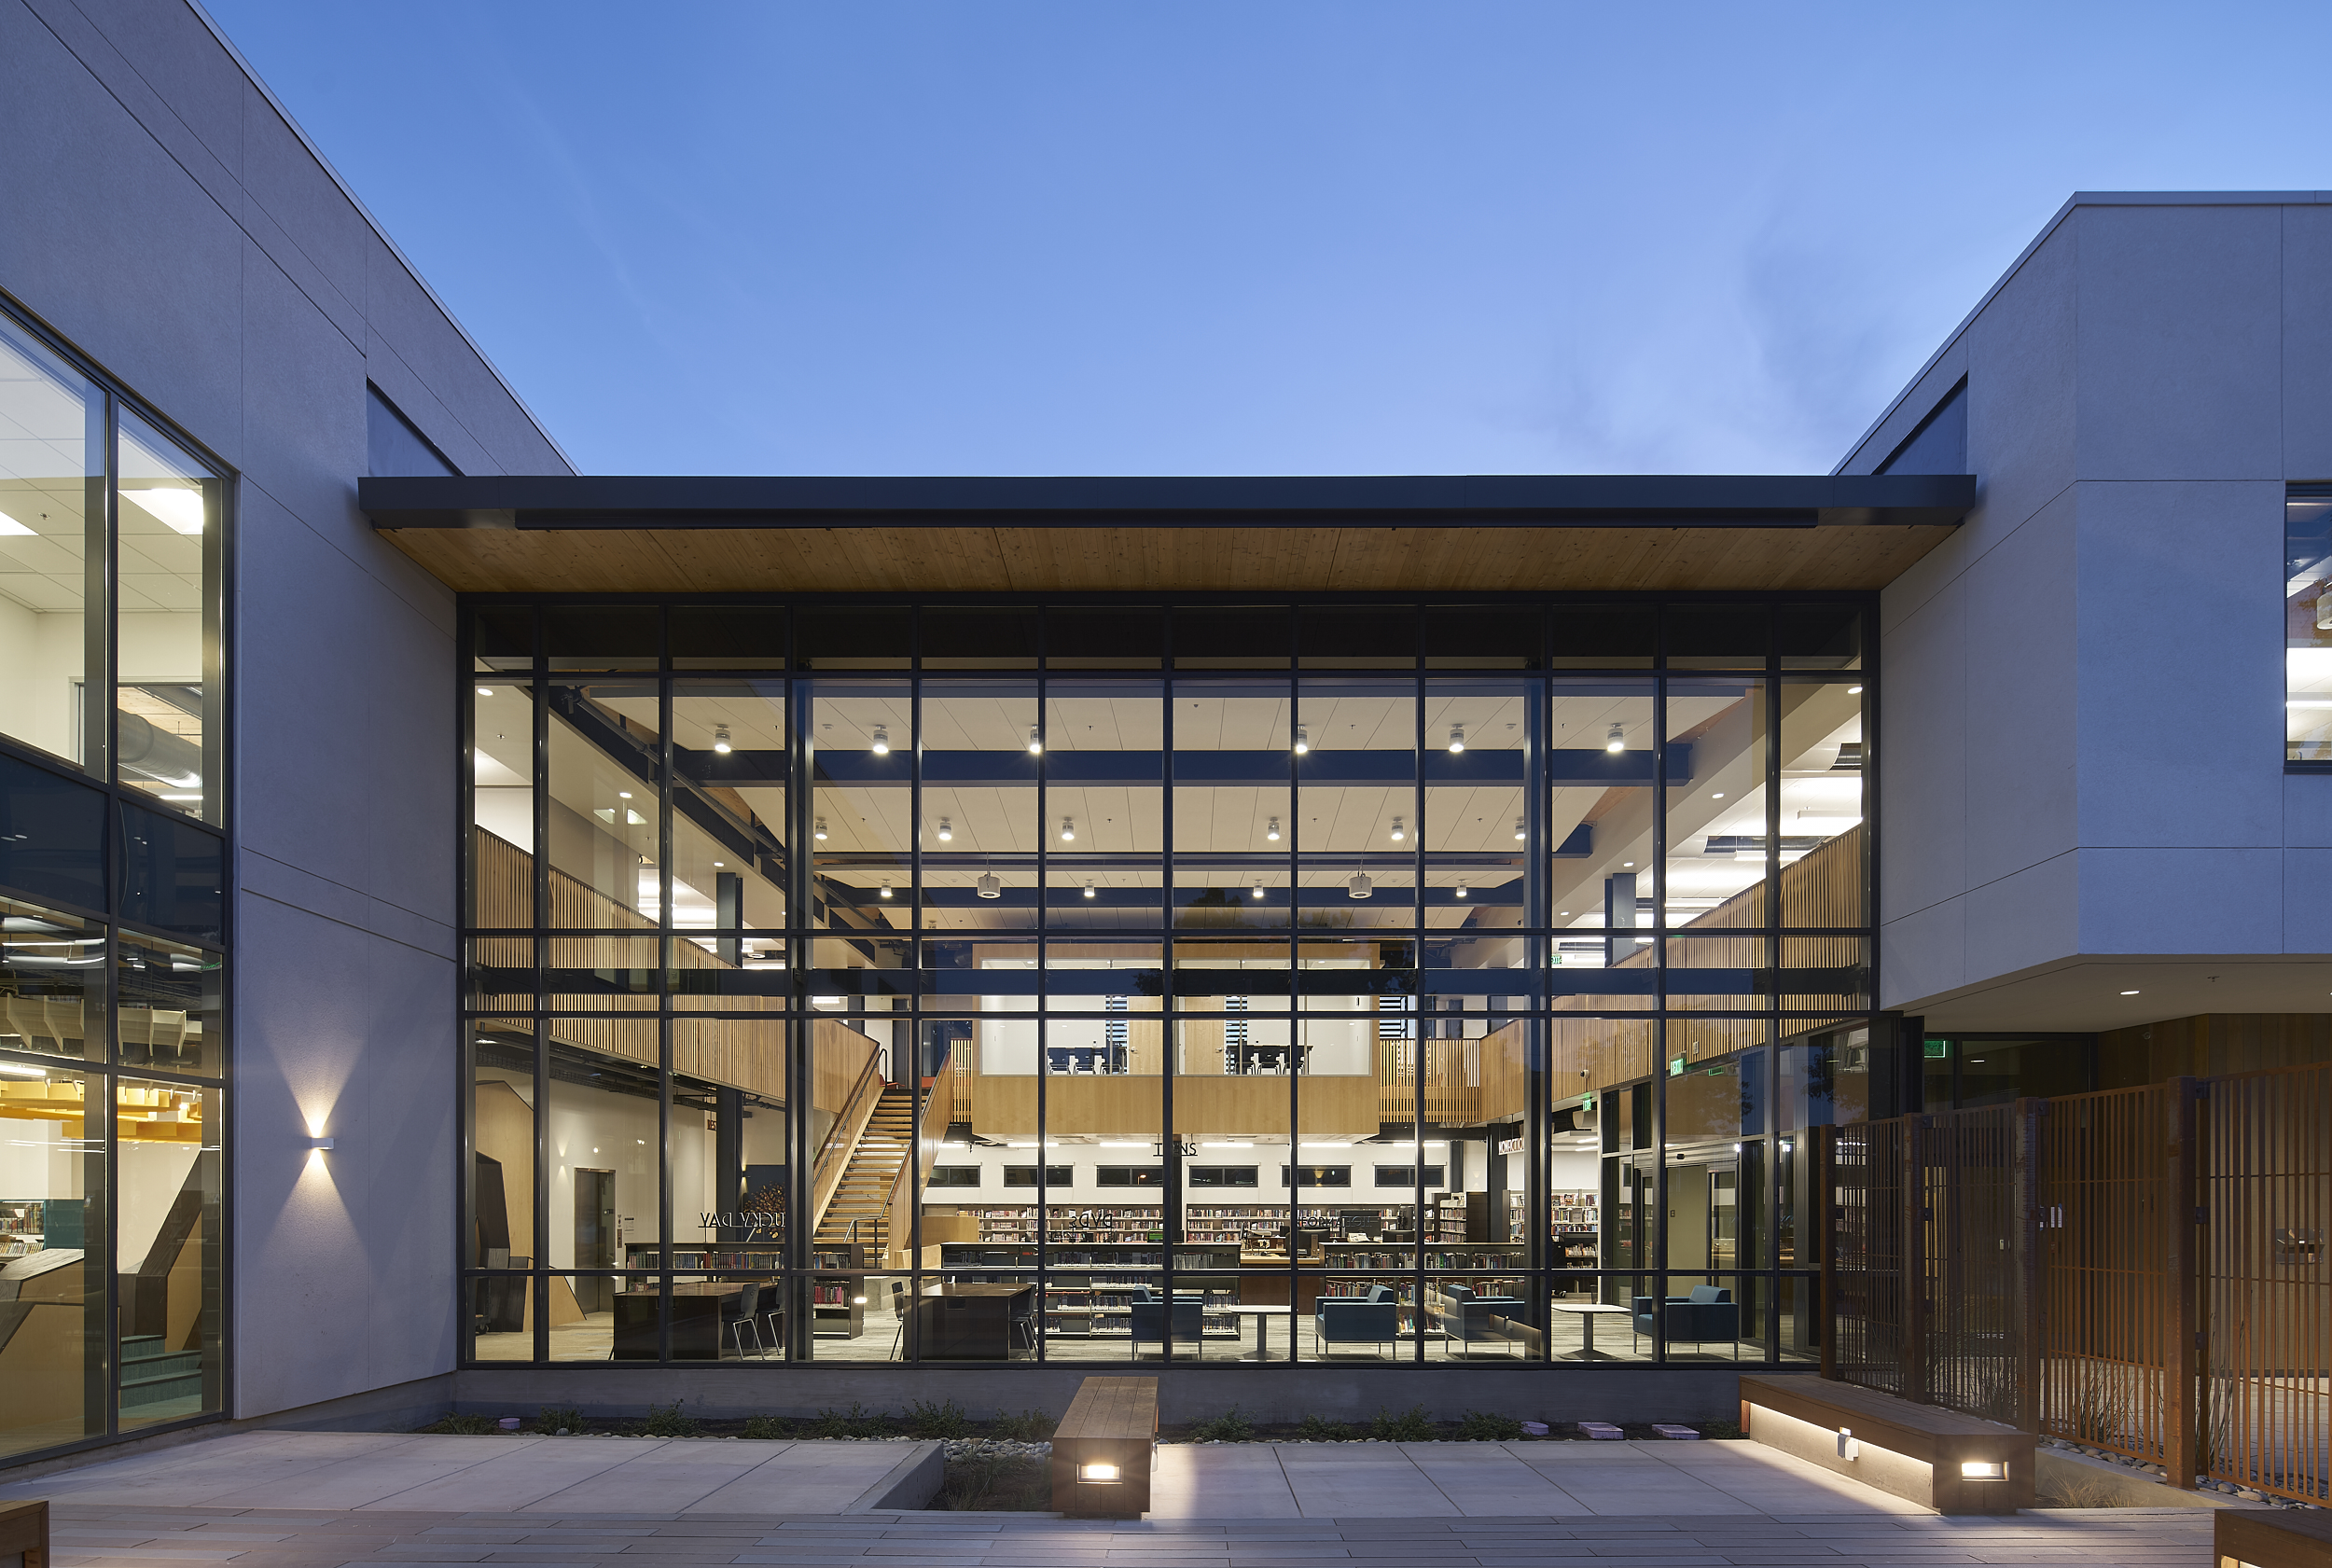 Brentwood Public Library- Fog Studio Architecture- Brentwood, CA